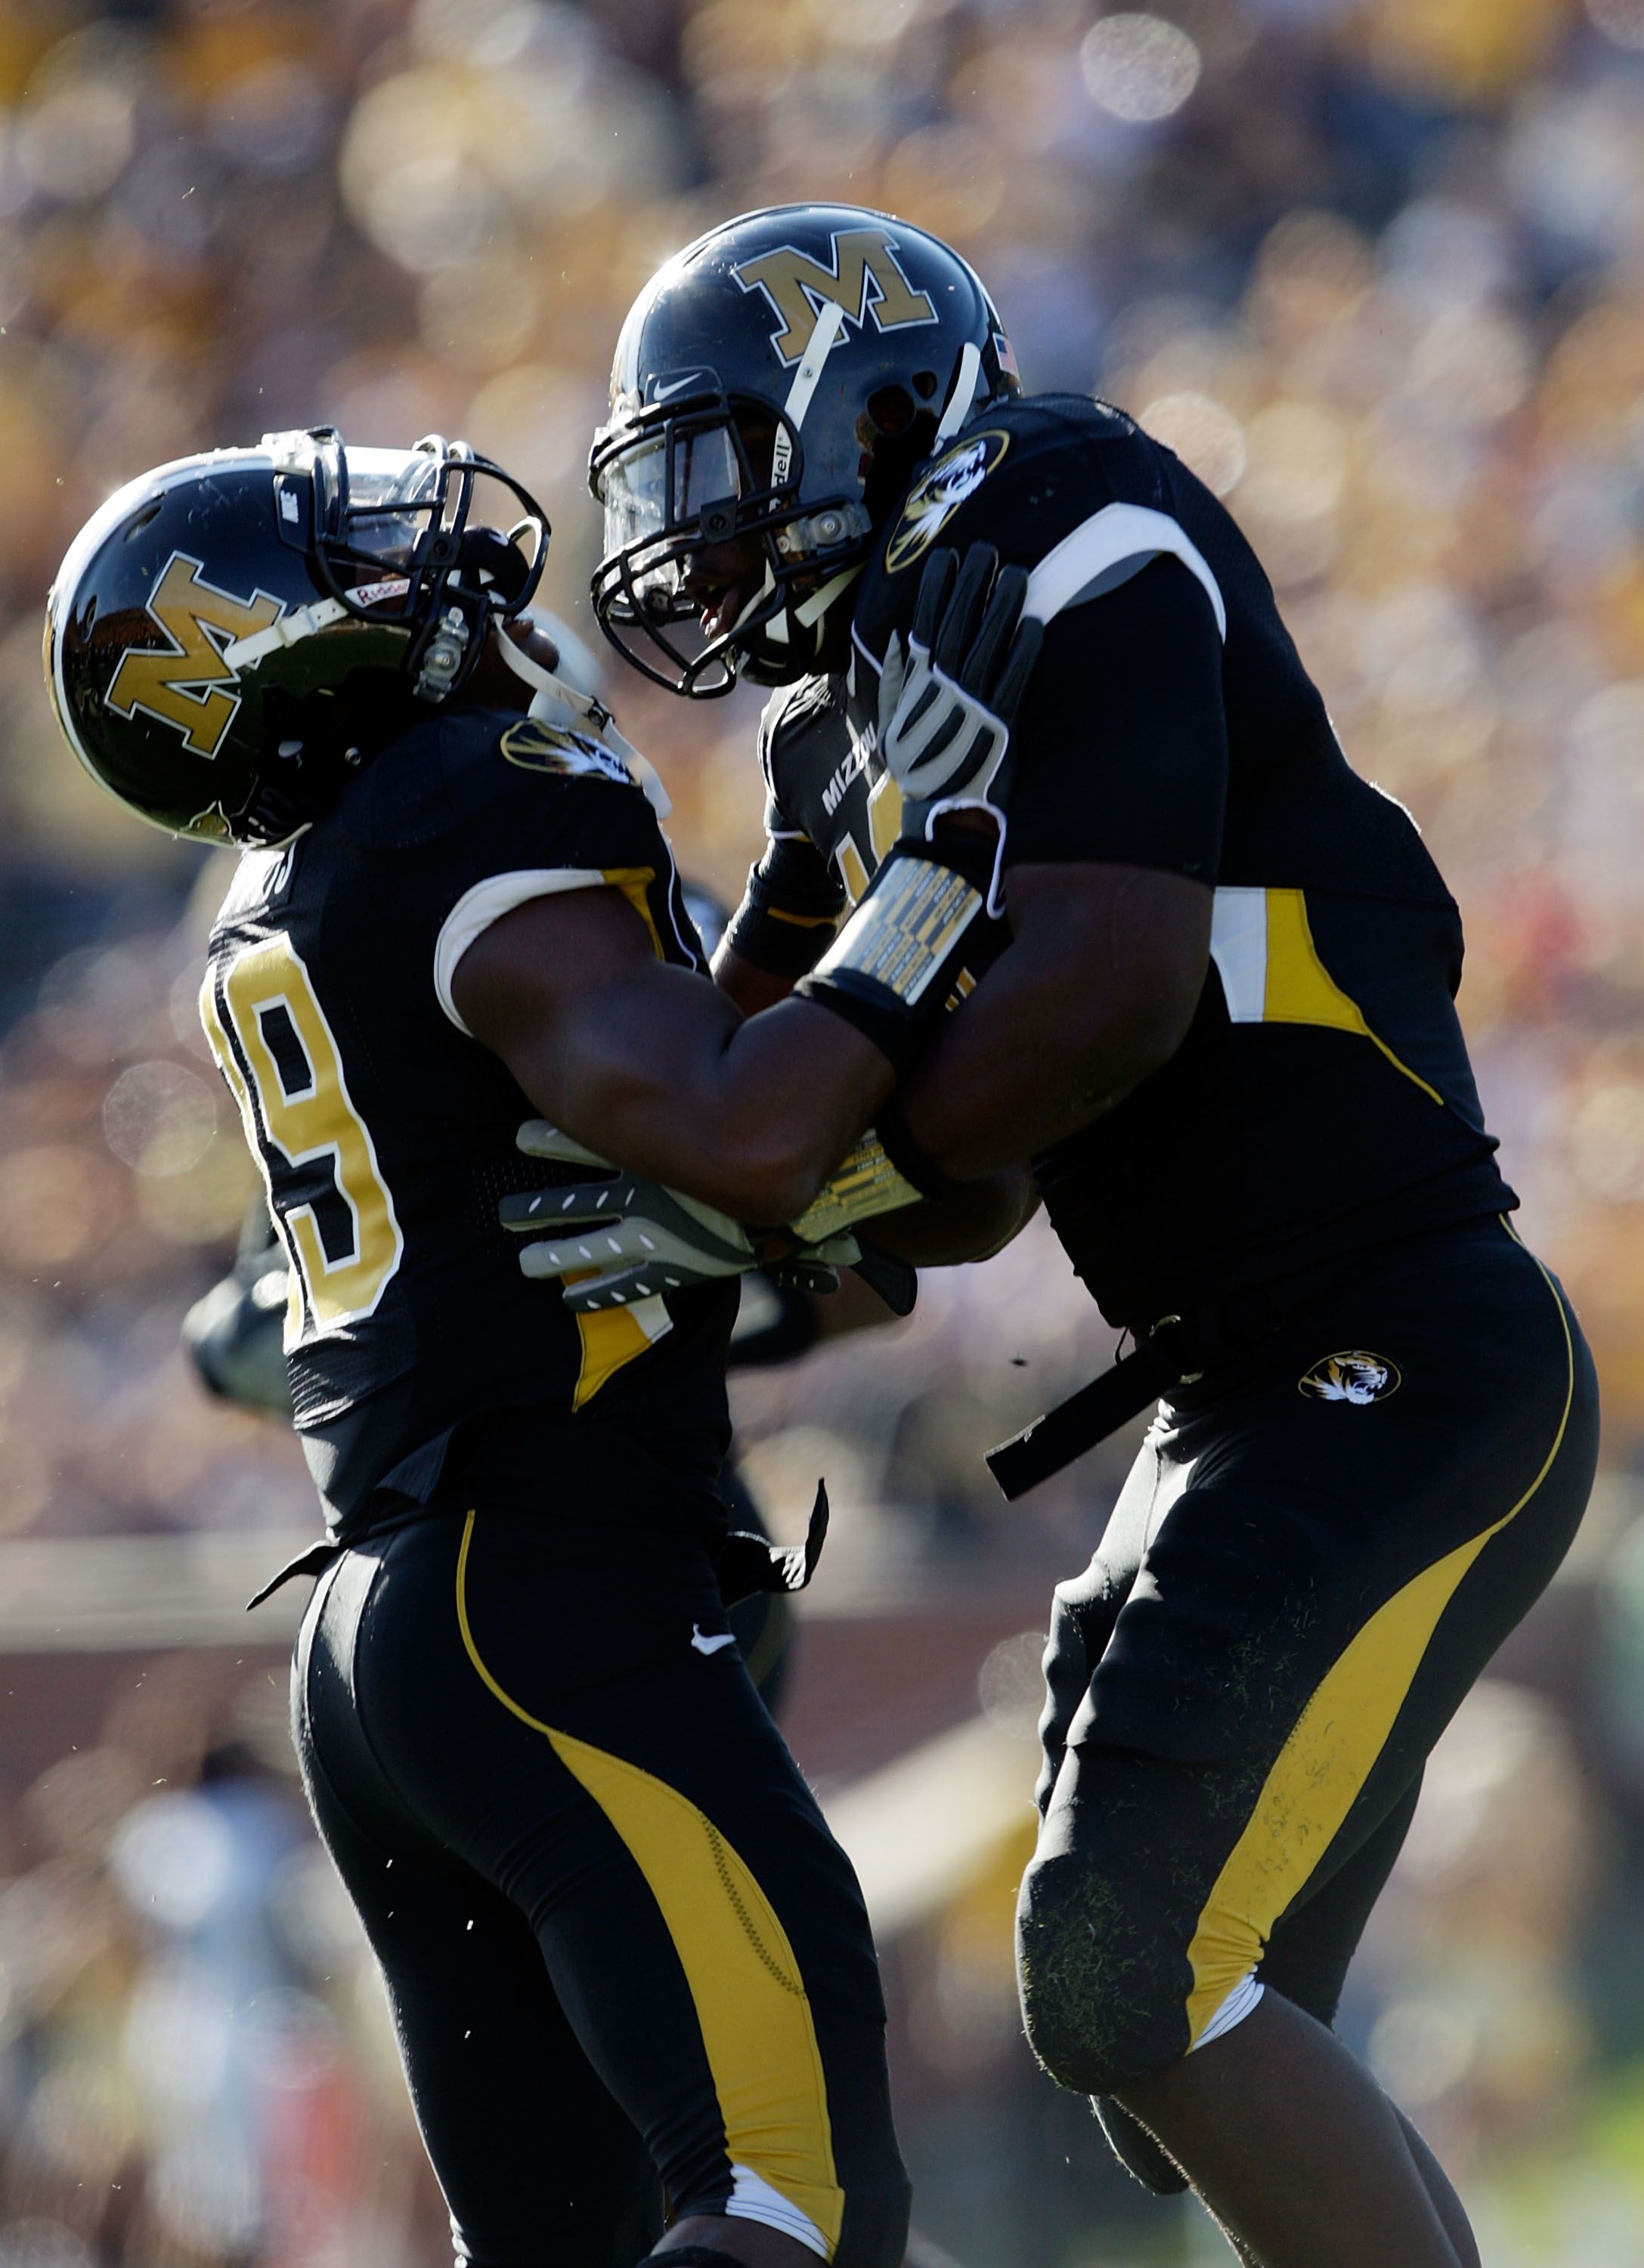 COLUMBIA, MO - NOVEMBER 07:  Linebacker Sean Weatherspoon #12 of the Missouri Tigers is congratulated by Carl Gettis #19 after the Tigers stopped the Baylor Bears offense during the game at Faurot Field/Memorial Stadium on November 7, 2009 in Columbia, Mi